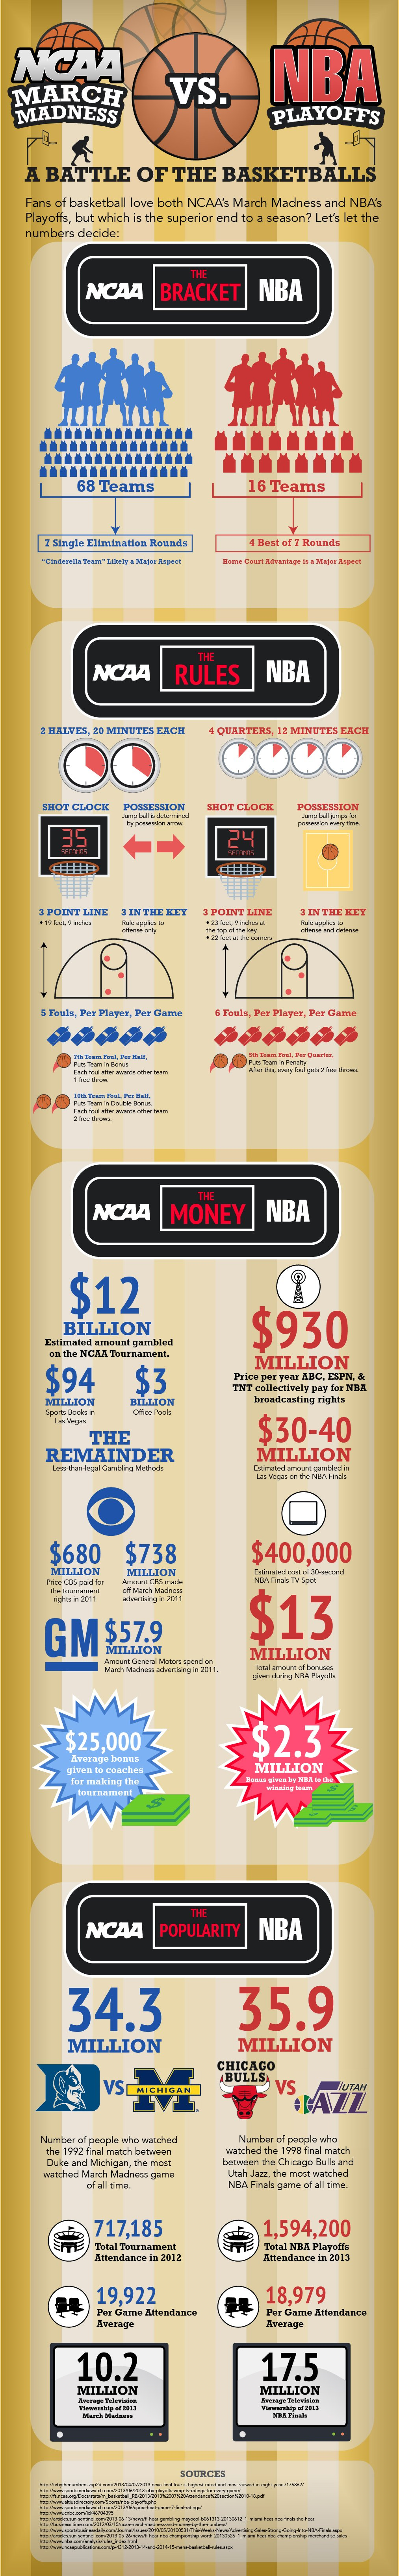 March Madness vs. NBA Finals Infographic